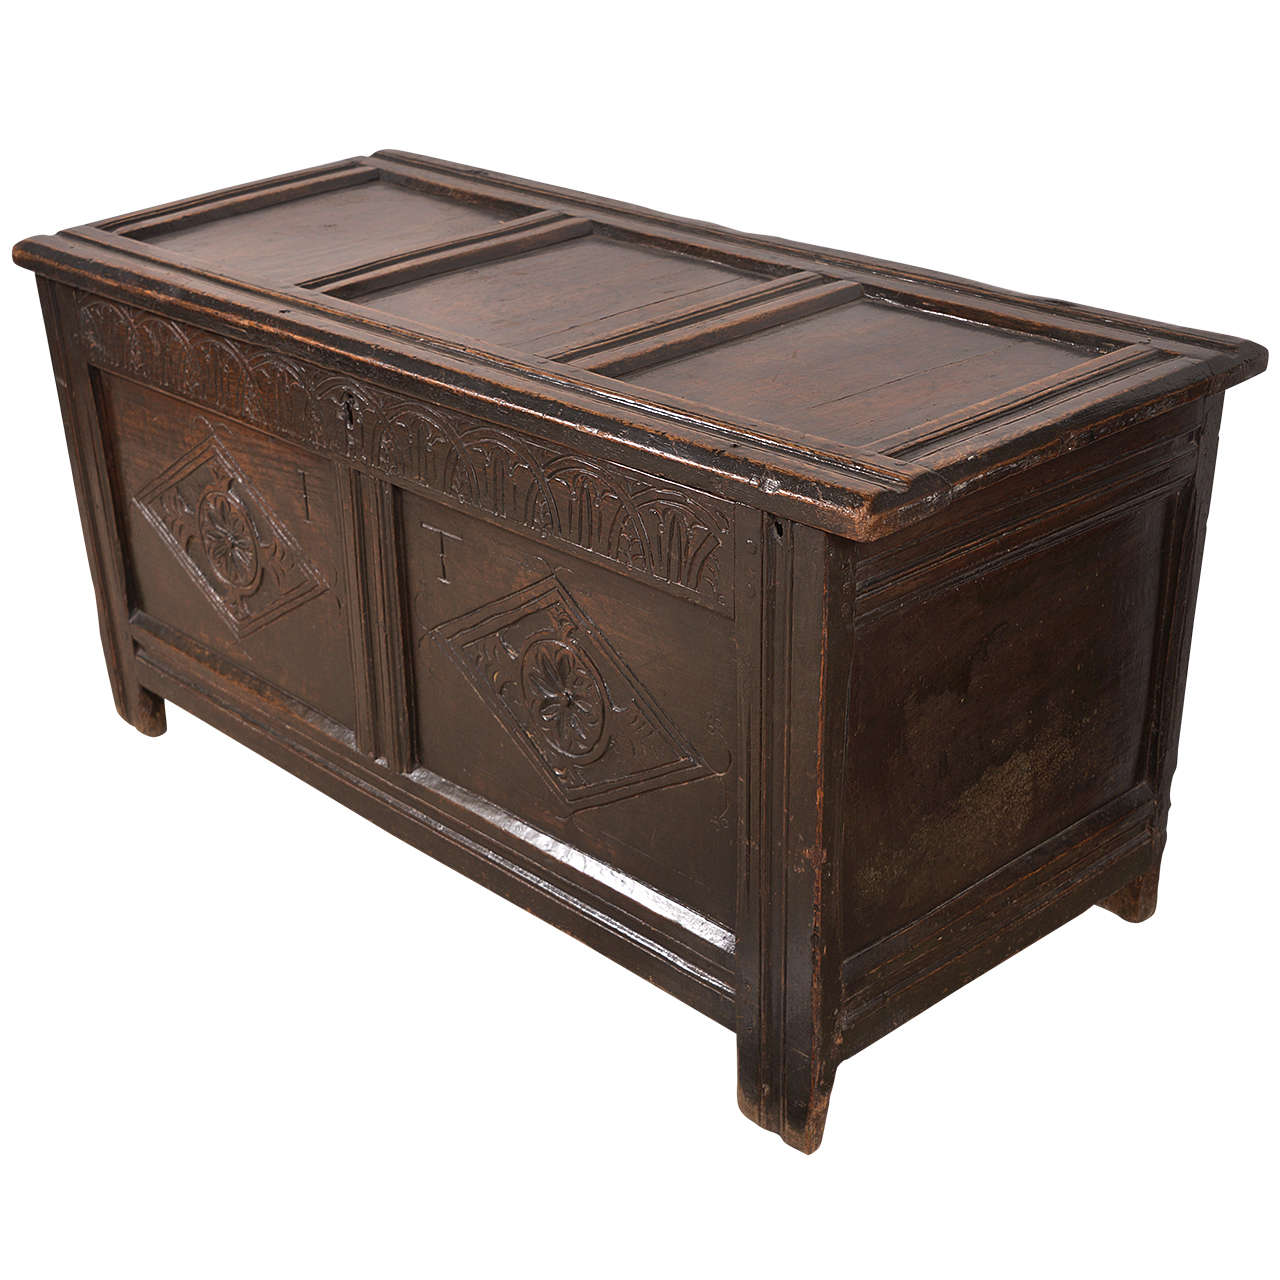 Late 17th-Early 18th Century English Chest